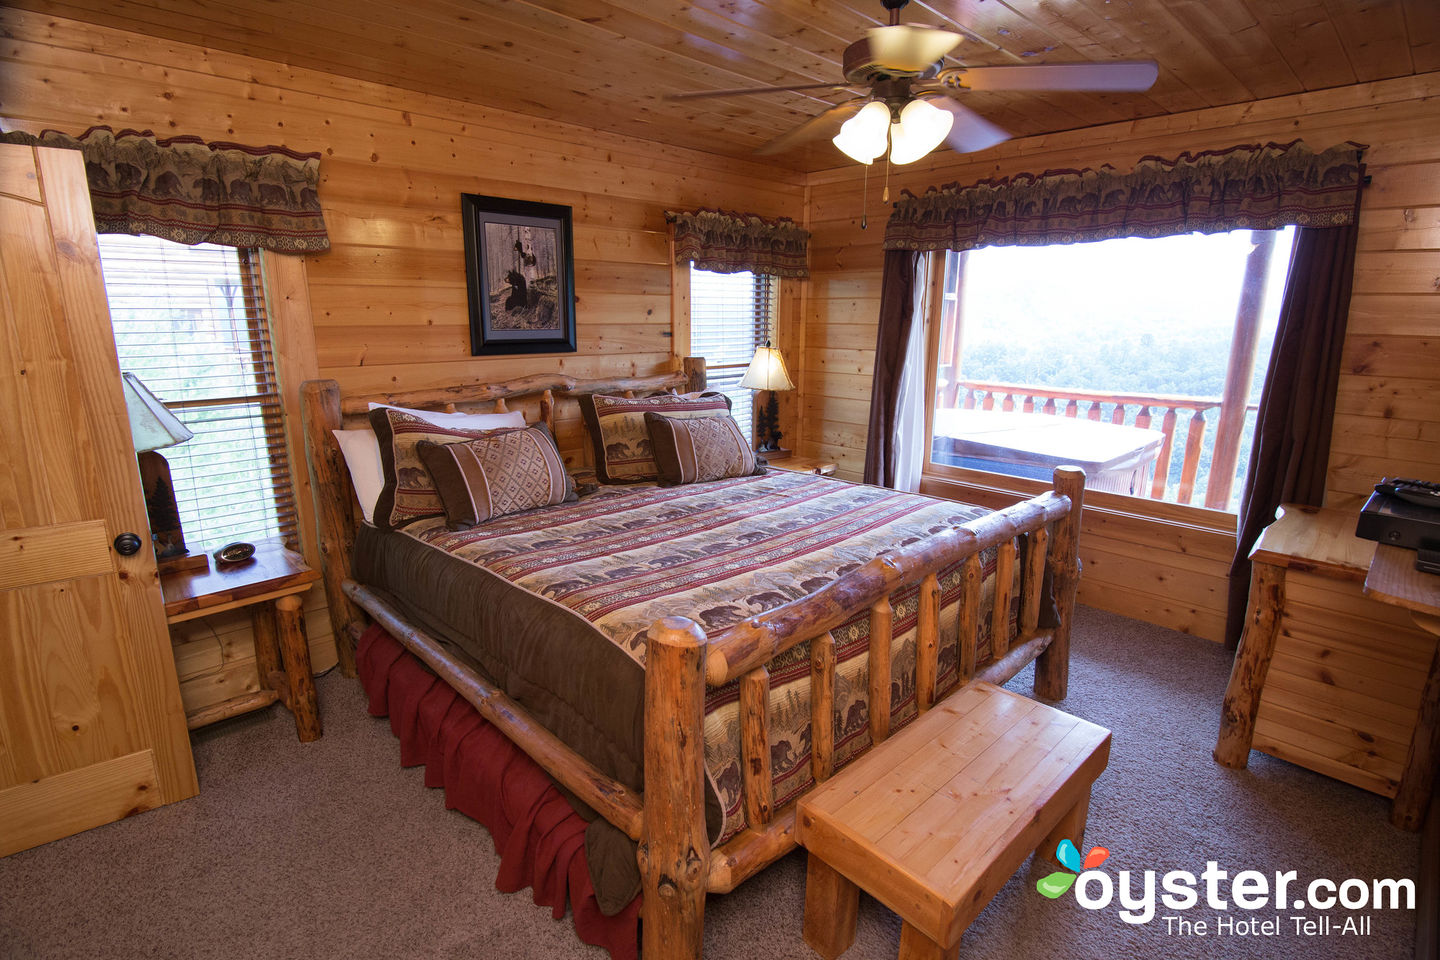 The Best Smoky Mountains Cabin Resorts (updated 2019) | Oyster com